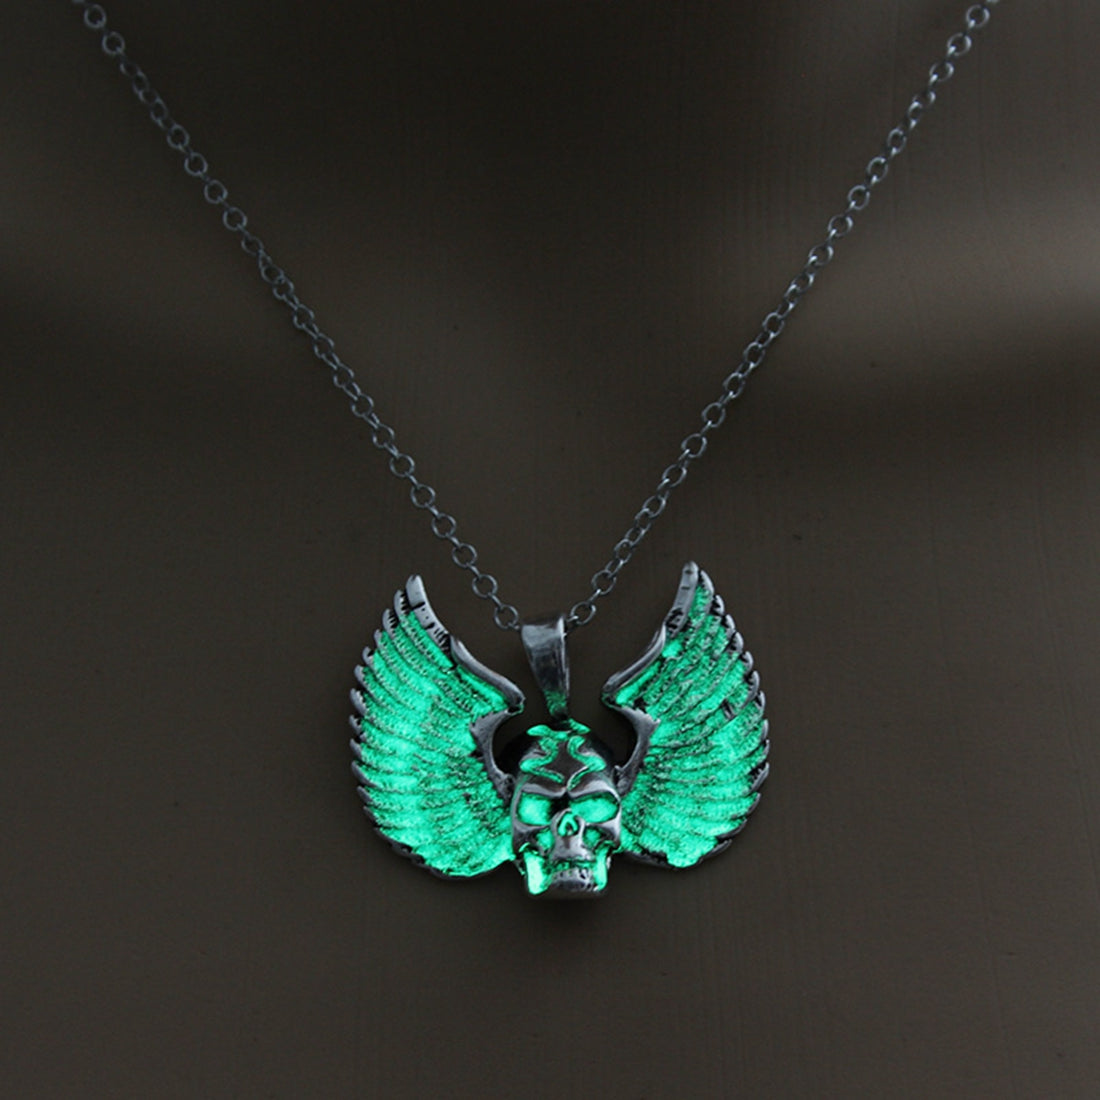 Punk Style Skull Pendant Necklace Luminous Jewelry Wings Necklace Glowing In The Dark For Women Gift Fashion 3 Colors